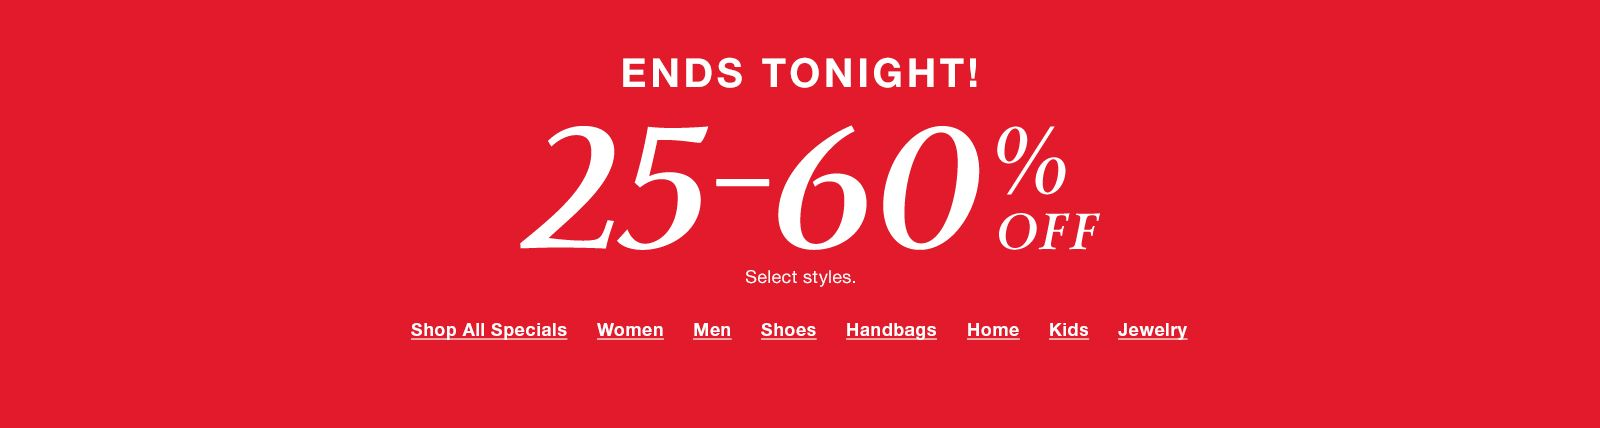 Ends Tonight! 25-60% Off, Select styles, Shop All Specials, Women, Men, Shoes, Handbags, Home, Kids, Jewelry